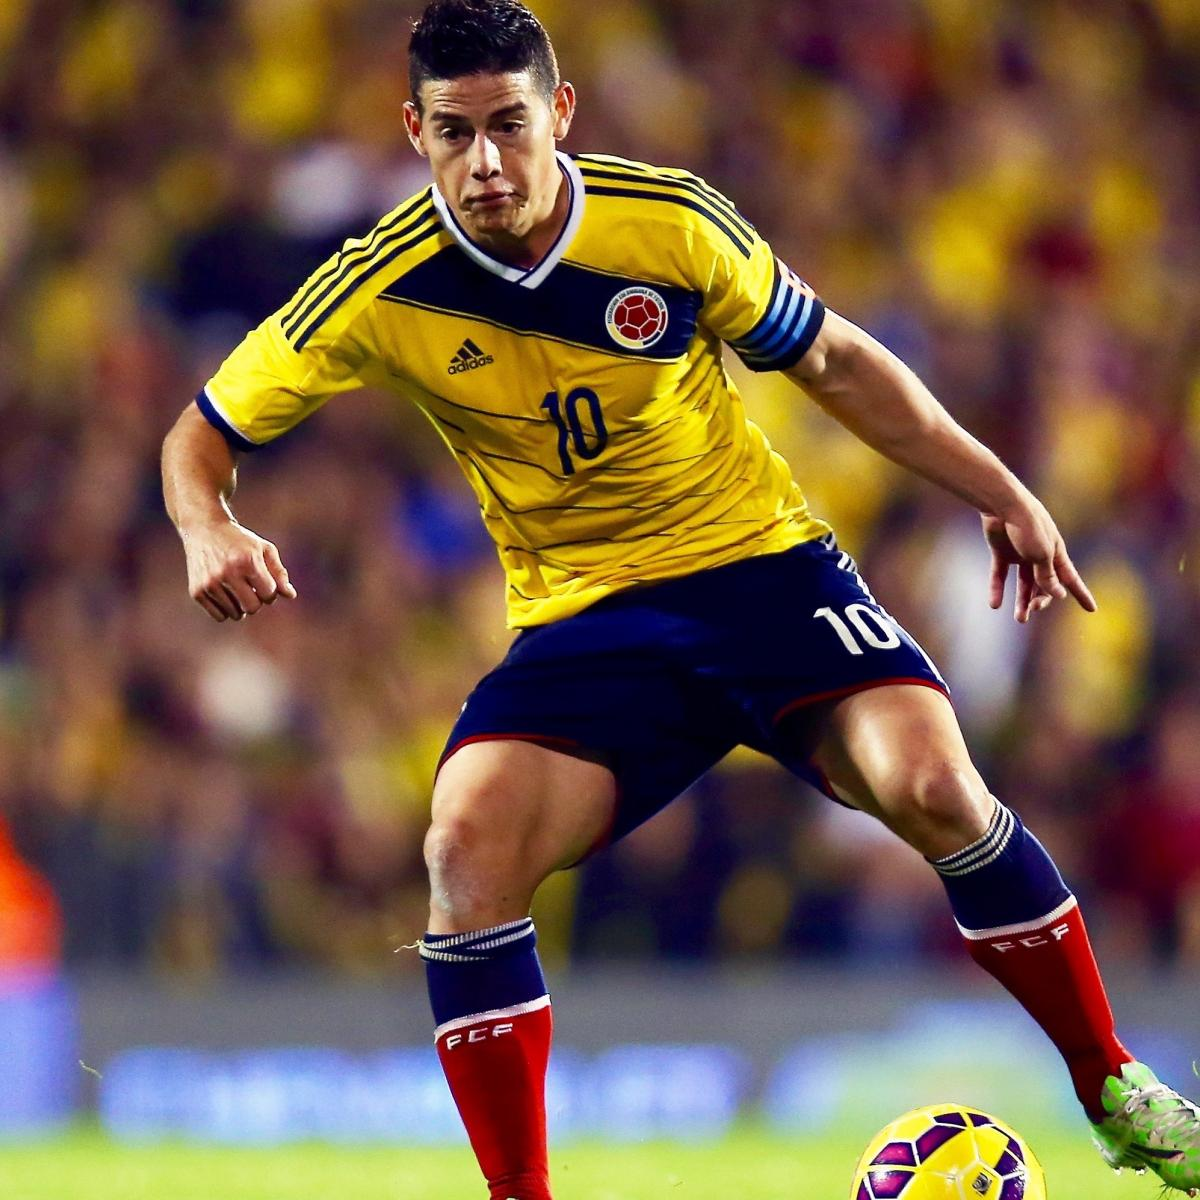 Colombia Vs. Peru: Live Score, Highlights From Copa